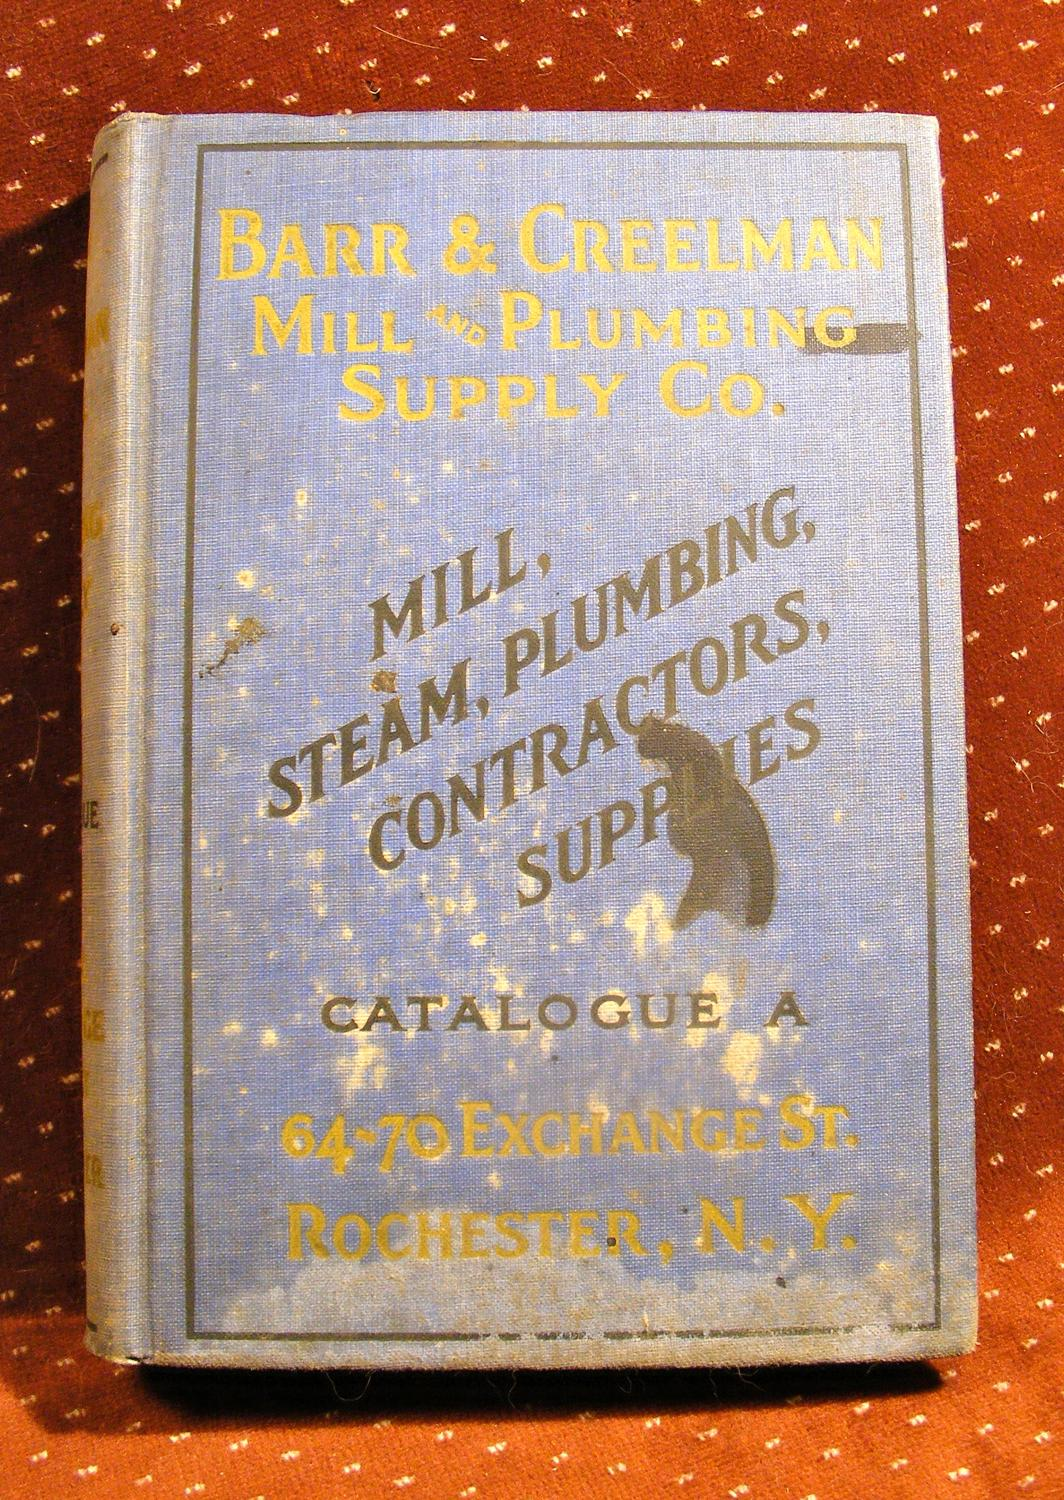 Barr & Creelman Mill and Plumbing Supply Co. General Supplies Catalog A - 1924 Fair Hardcover 9.25  X 6.5  in blue cloth. Covers are heavily discolored and soiled, but binding is still secure. Pages excellent and unmarked: FAIR MINUS. 853pp of